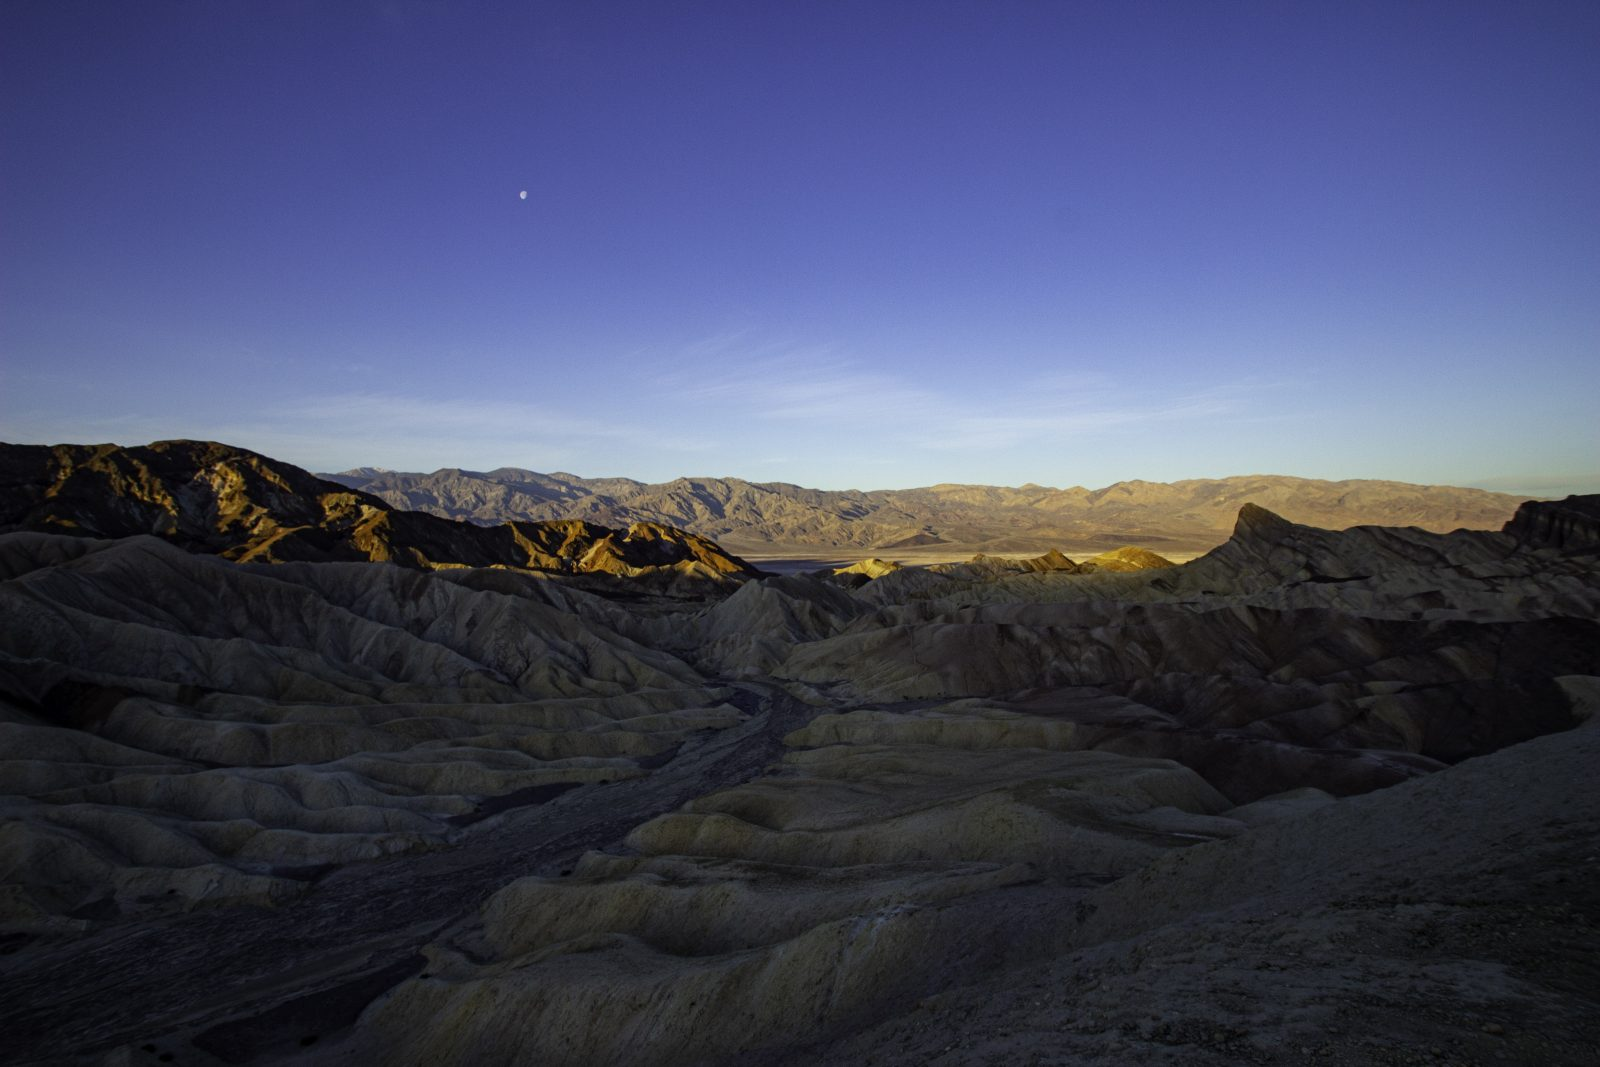 Sunrise Over Death Valley